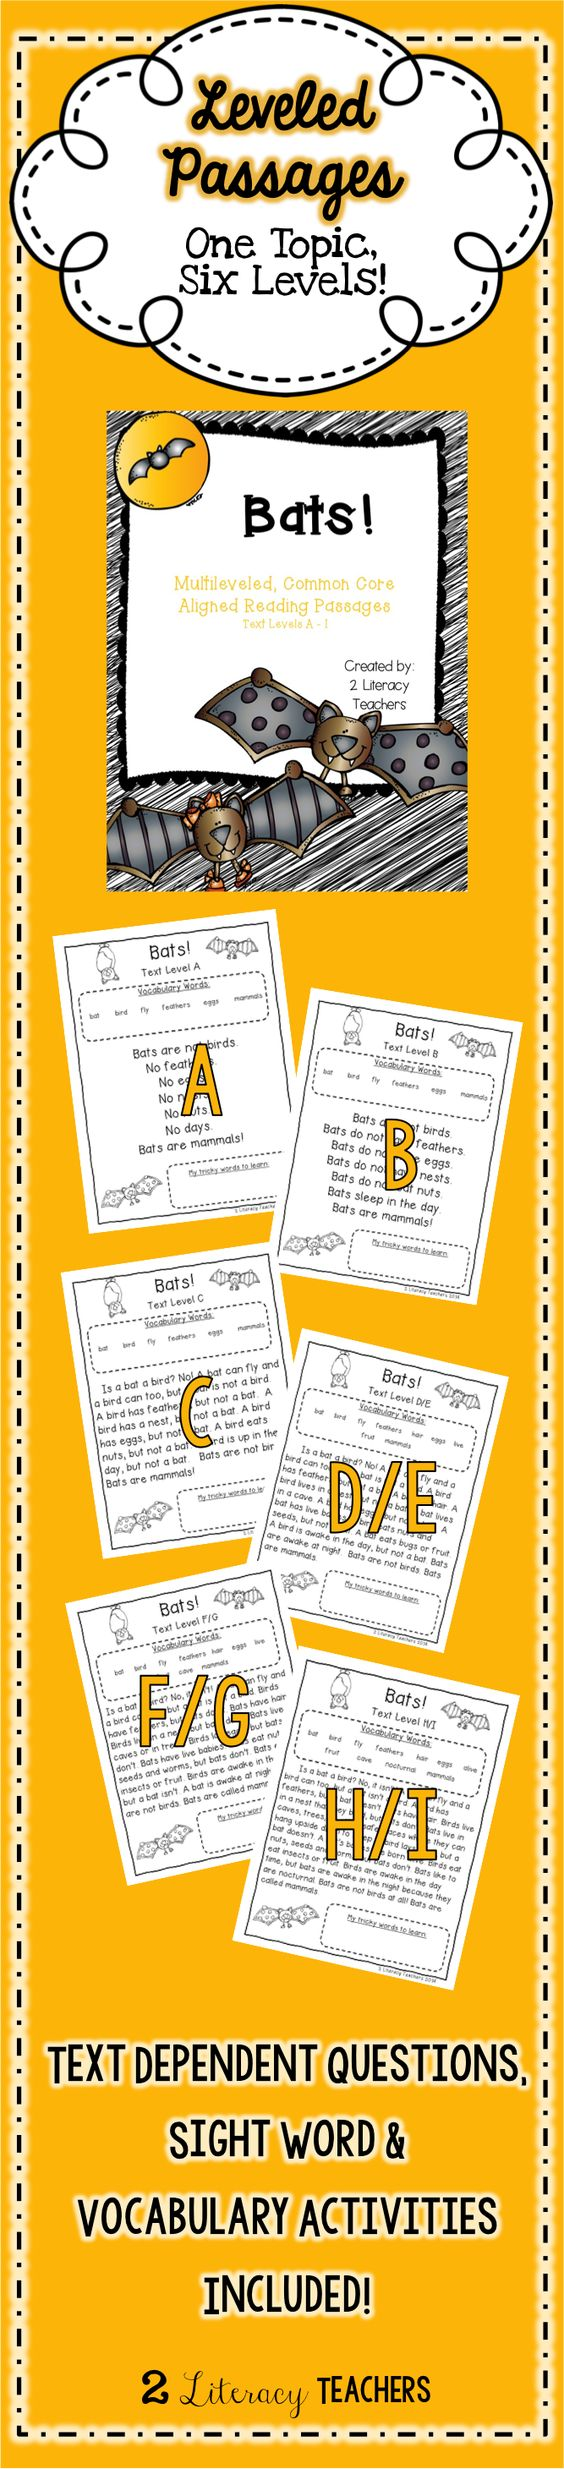 Worksheet Leveled Reading Passages bats small groups and reading on pinterest ccss aligned leveled passages activities